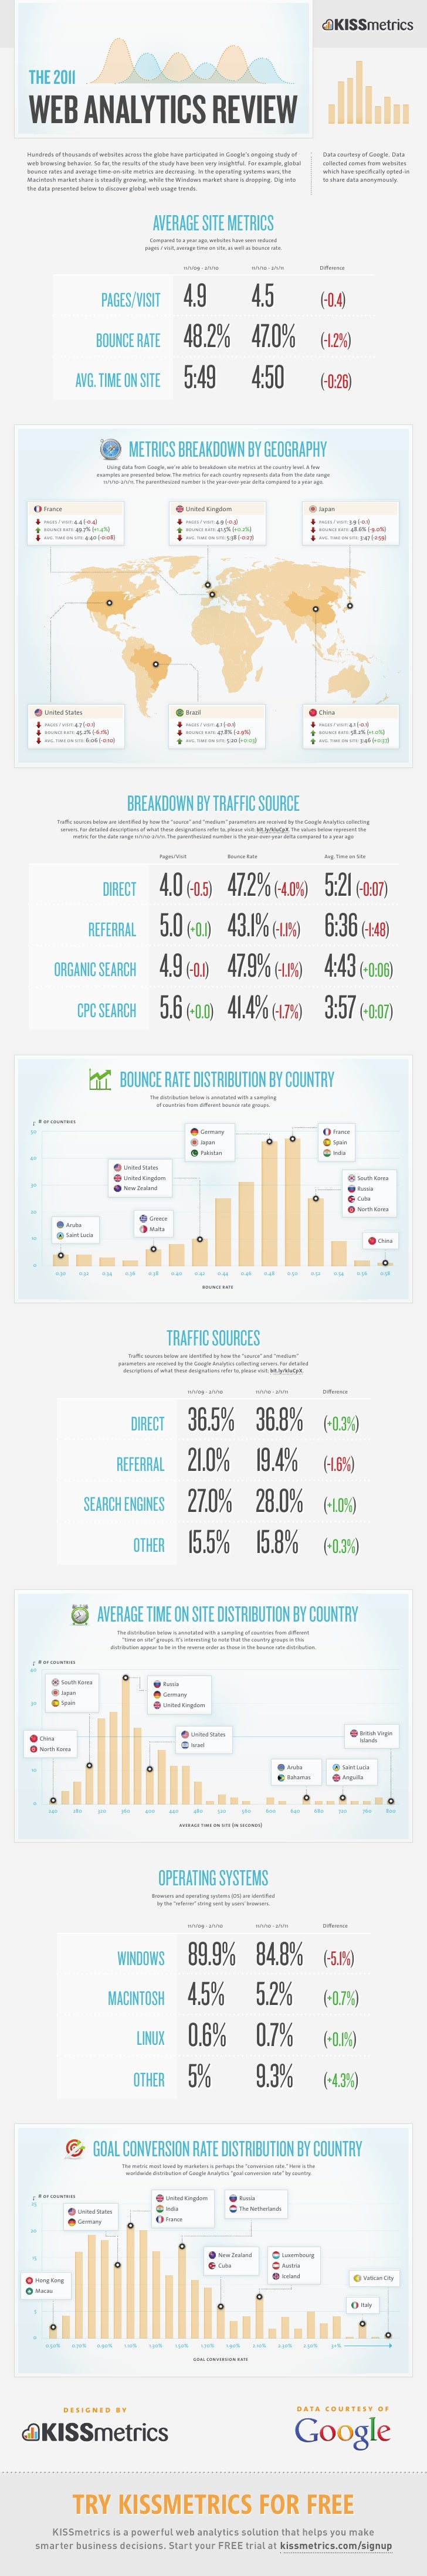 The 2011Web analyTics revieWHundreds of thousands of websites across the globe have participated in Google's ongoing study...